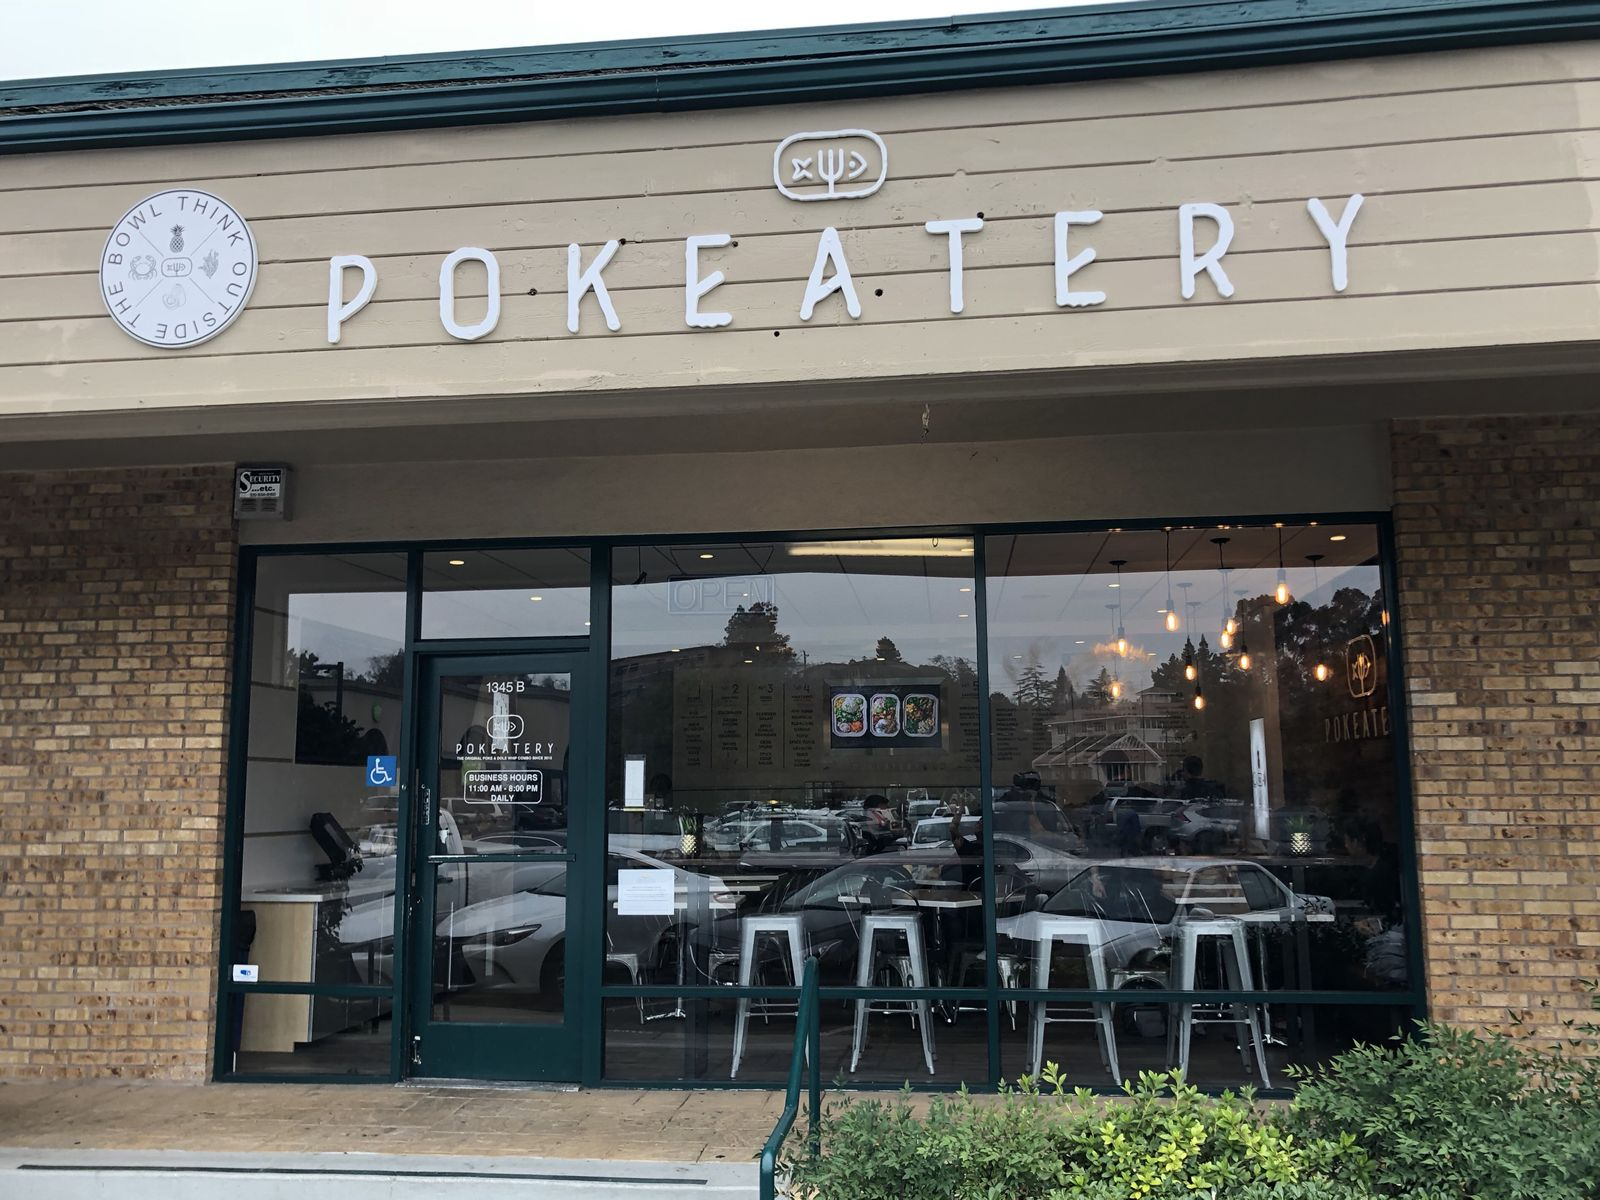 Pokeatery Walnut Creek is Hosting Grand Opening Celebration on Saturday, March 24